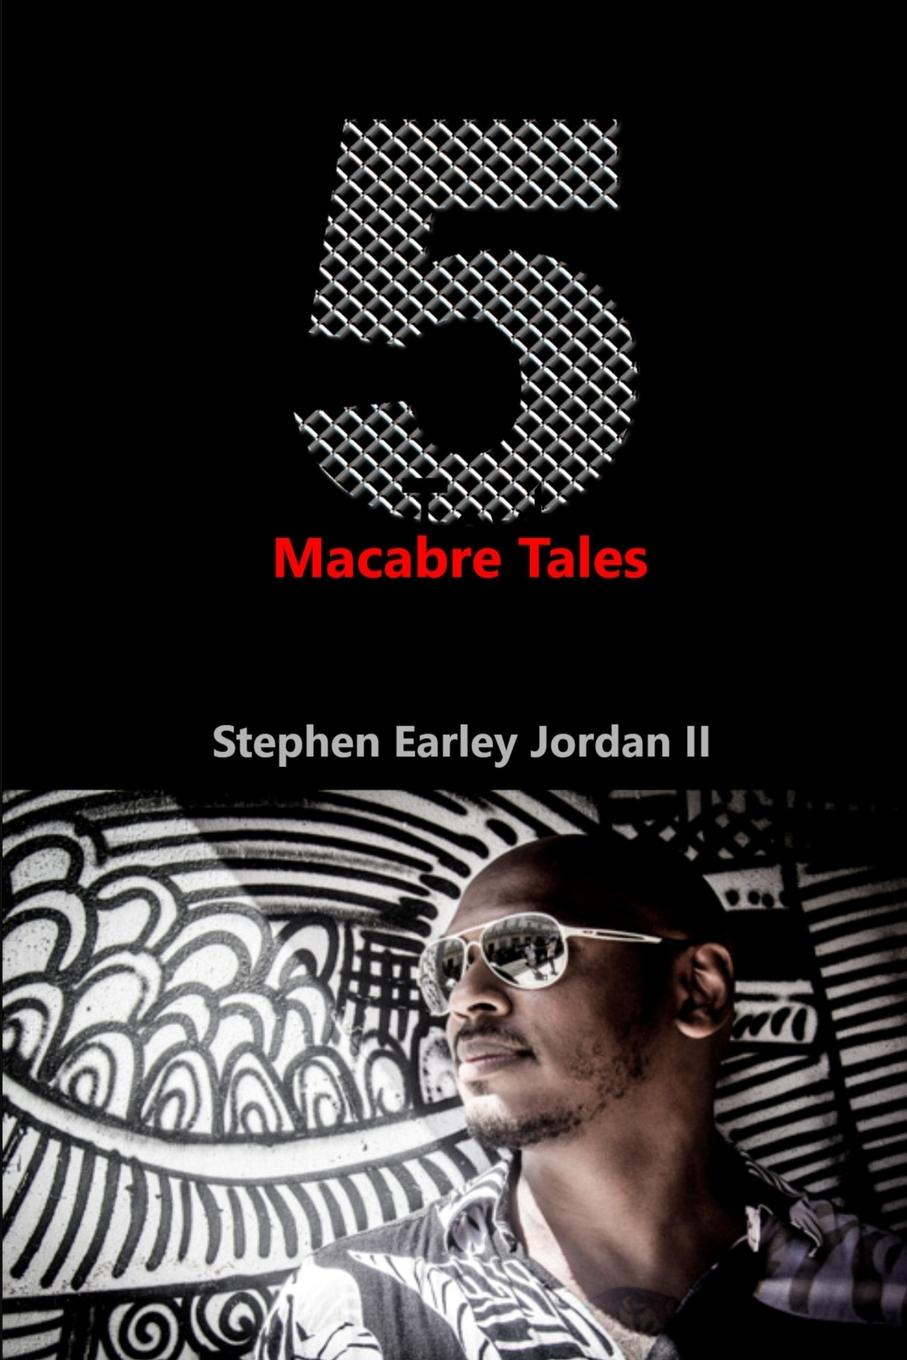 Stephen Earley Jordan II 5 Macabre Tales jordan d lewis trusted partners how companies build mutual trust and win together